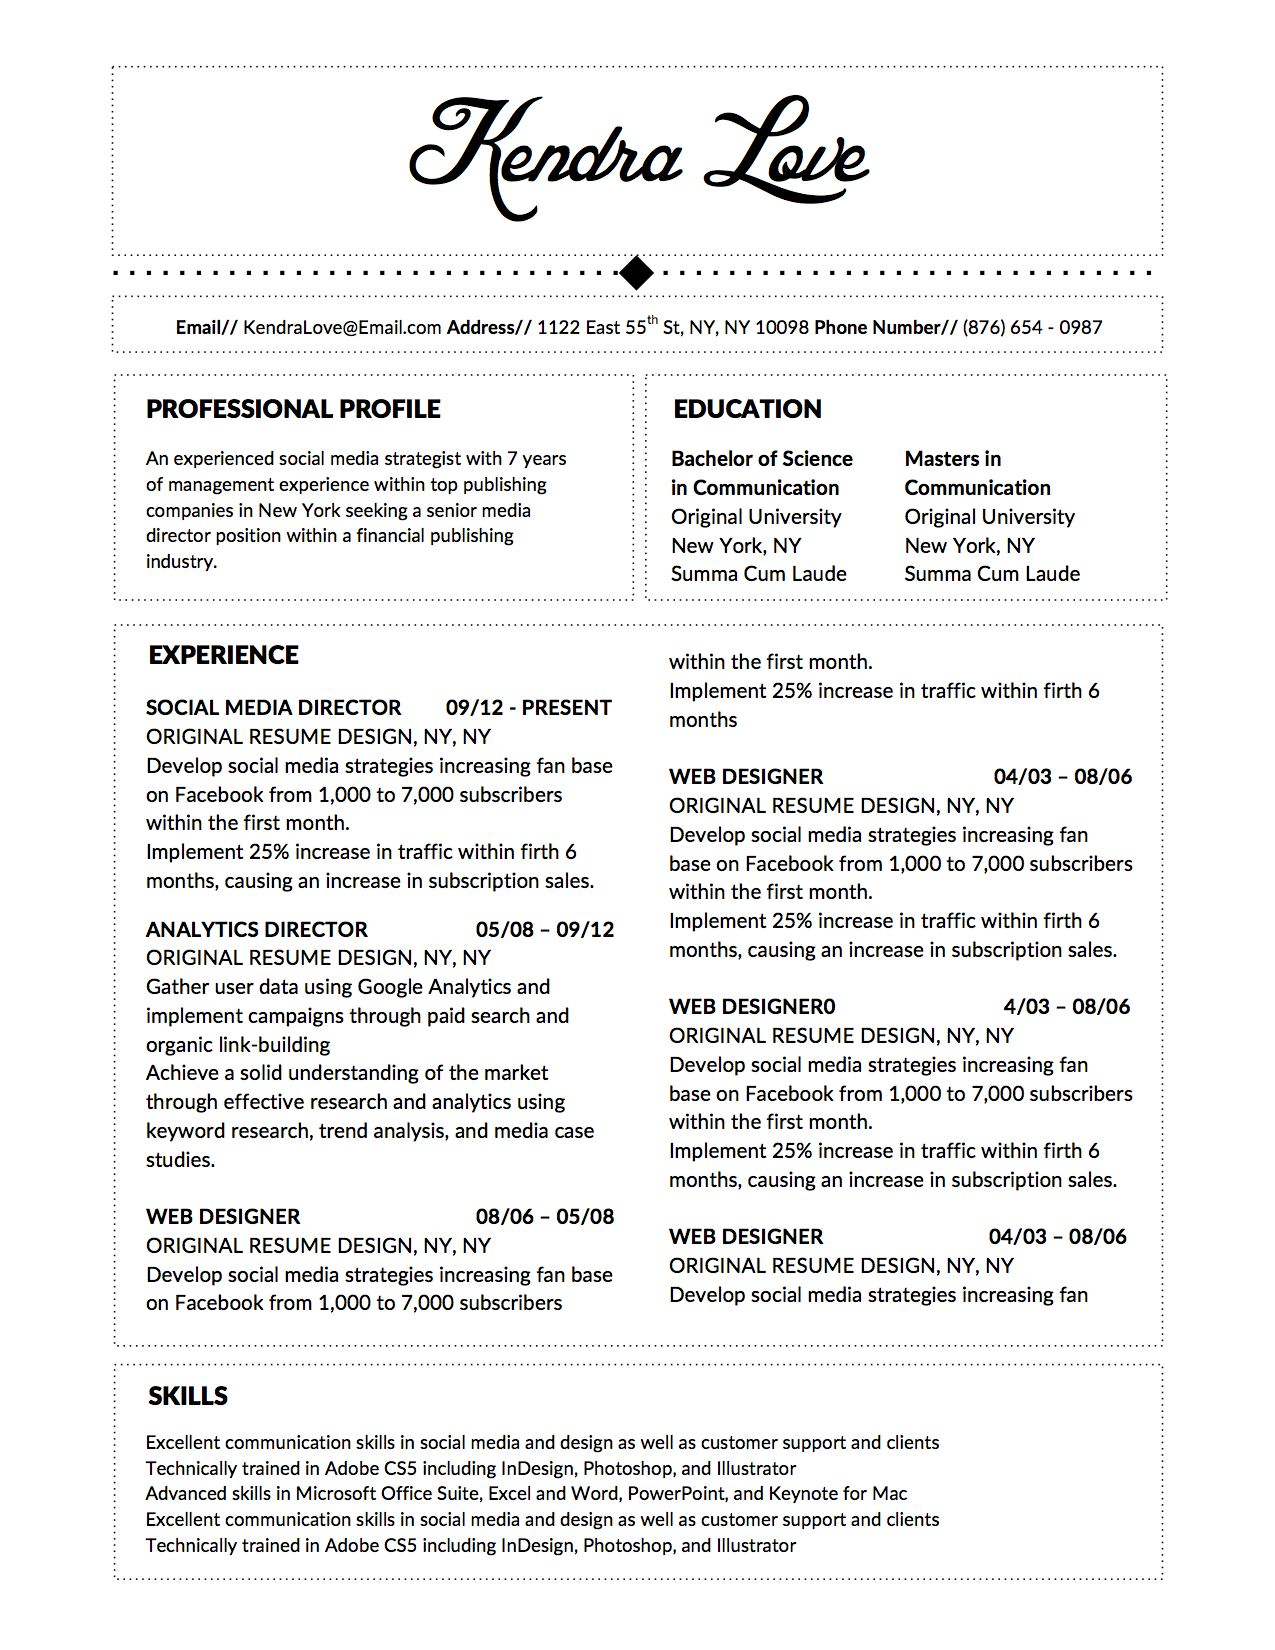 Kendra Love Resume Template for Microsoft Word Resume